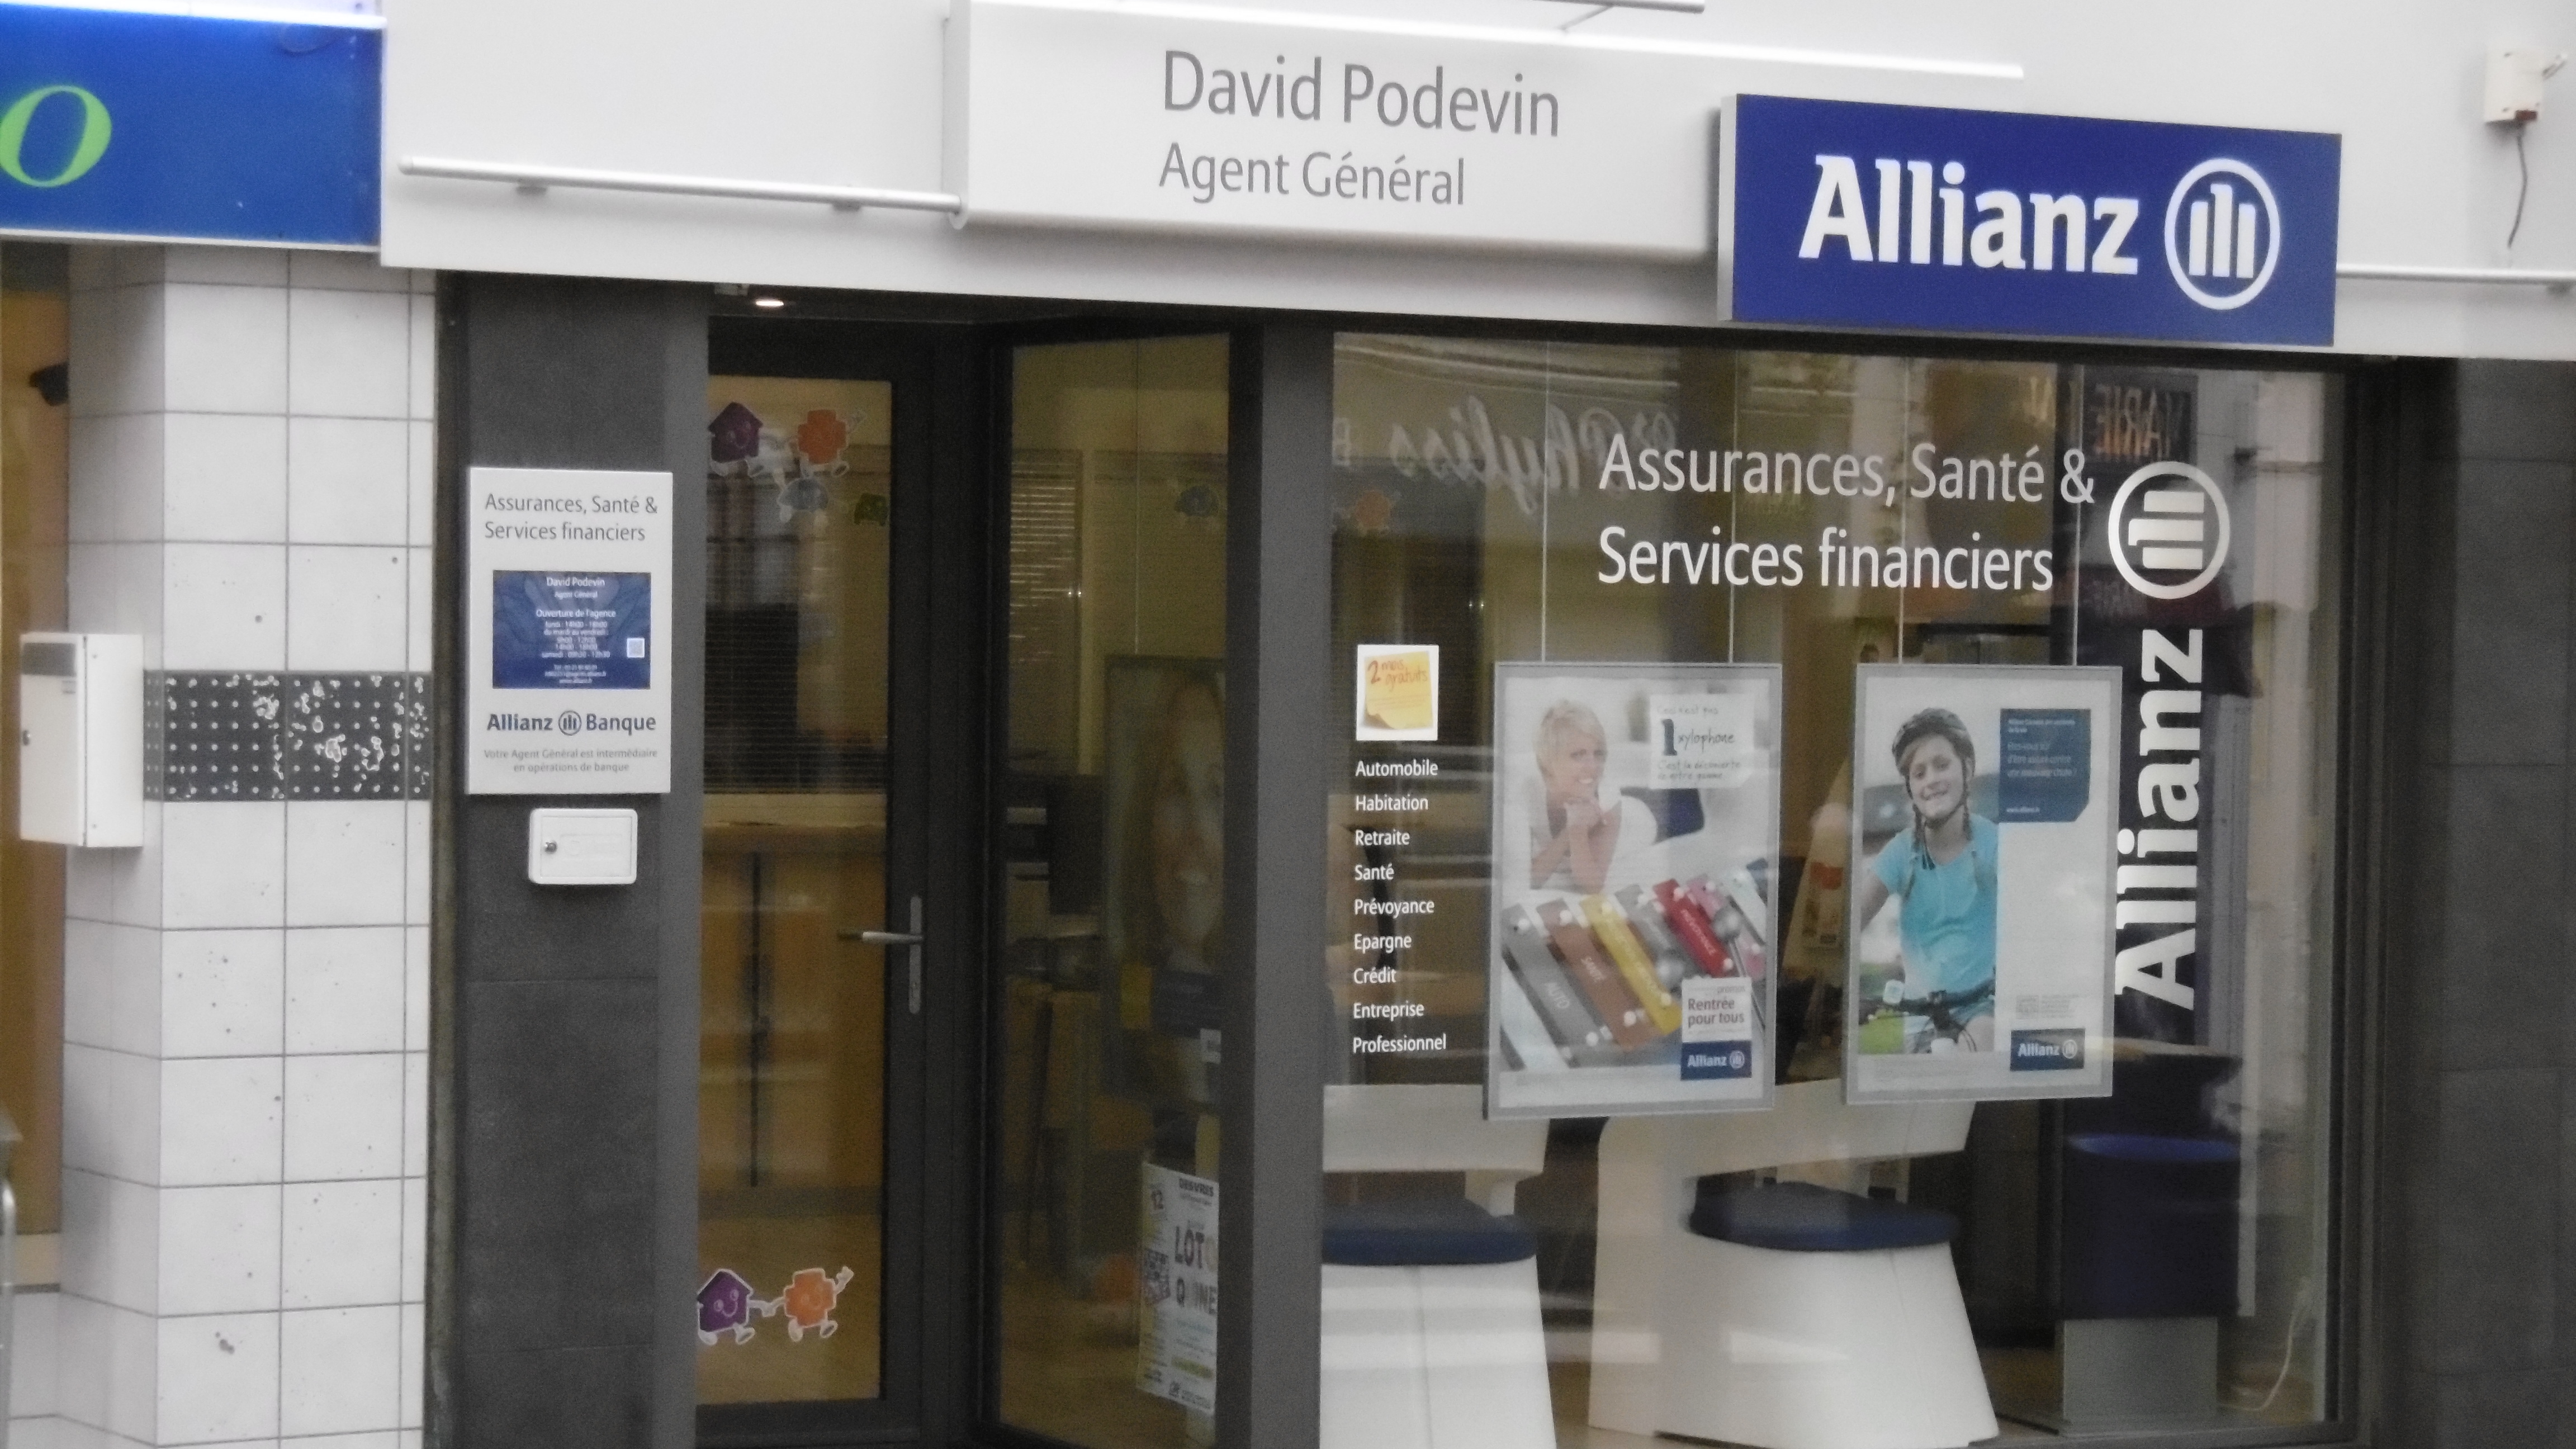 Allianz Desvres - David PODEVIN